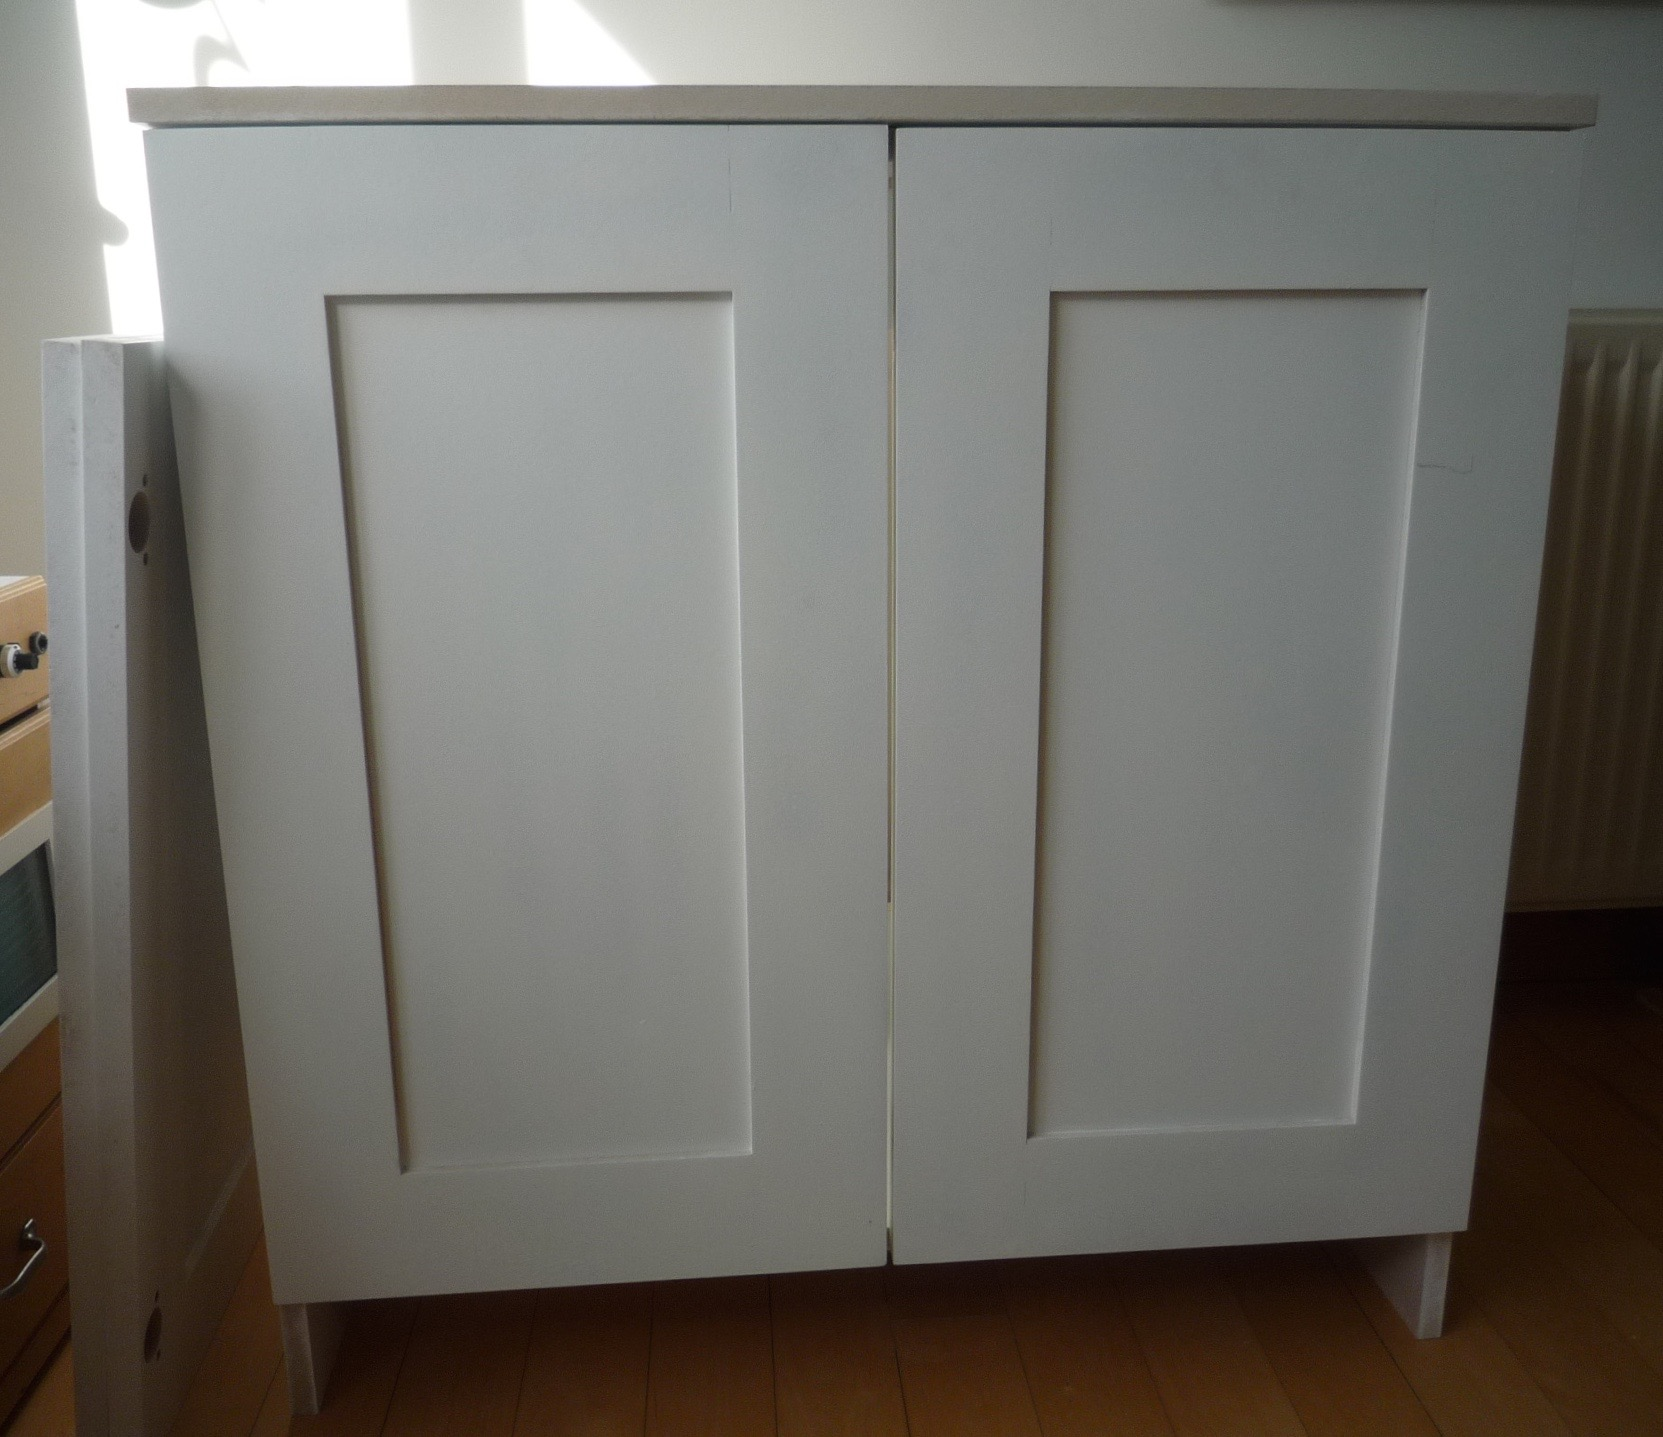 Primed Mdf Cupboards With Shaker Style Doors Part I